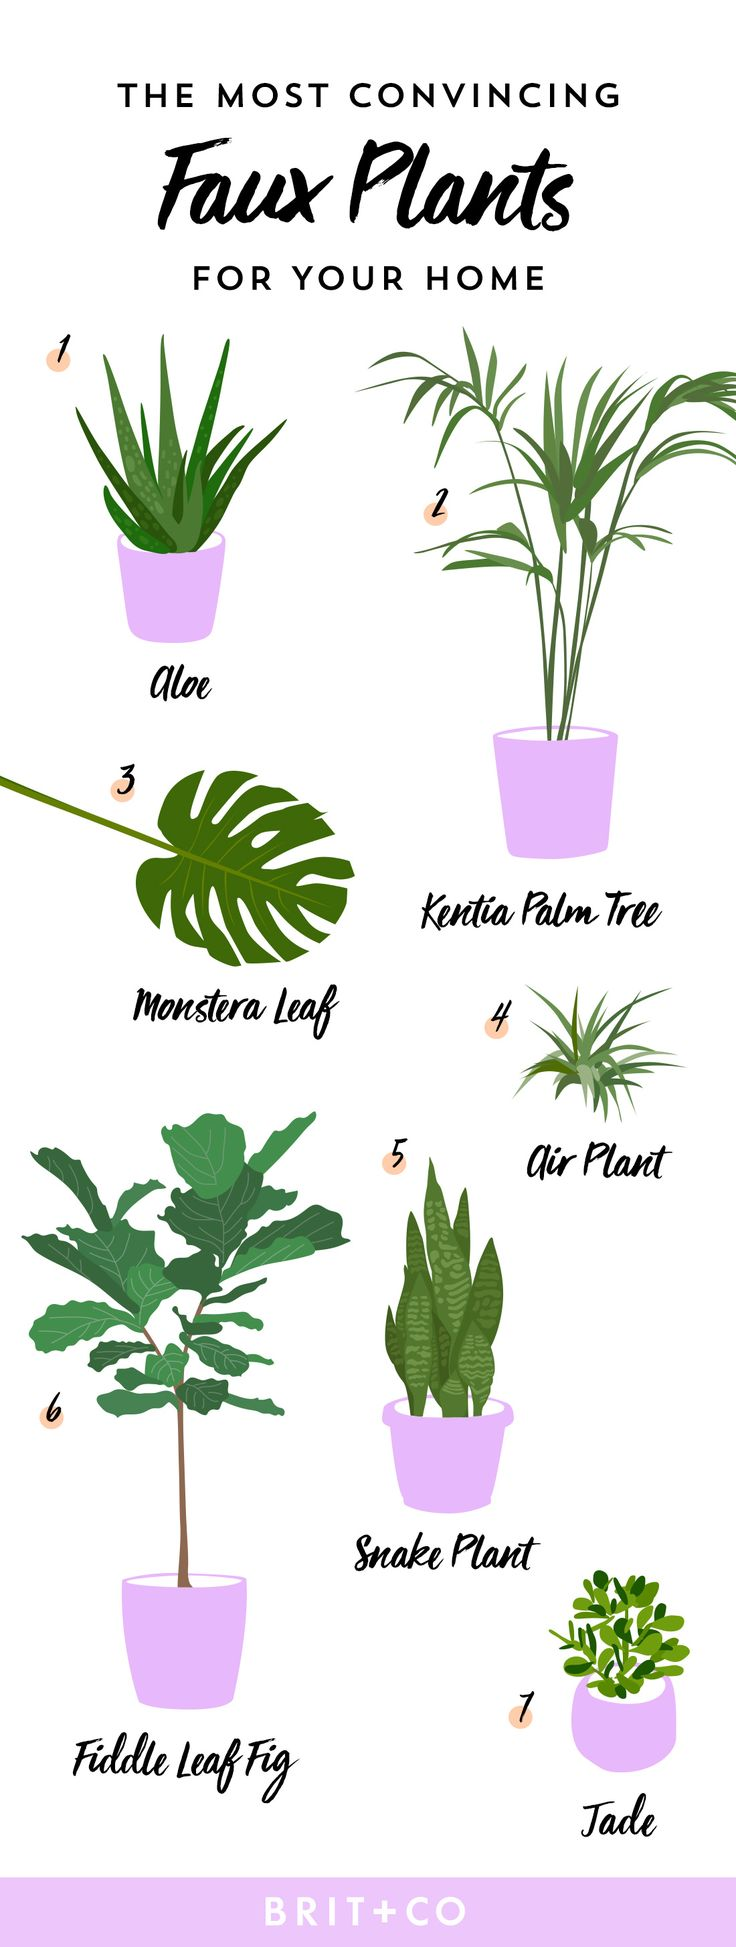 Save this infographic to help you pick the artificial plants for fauxliage that doesn't look faux or fake, like aloe, kentia palm tree, monstera leaf, air plant, snake plant, fiddle leaf fig + jade.